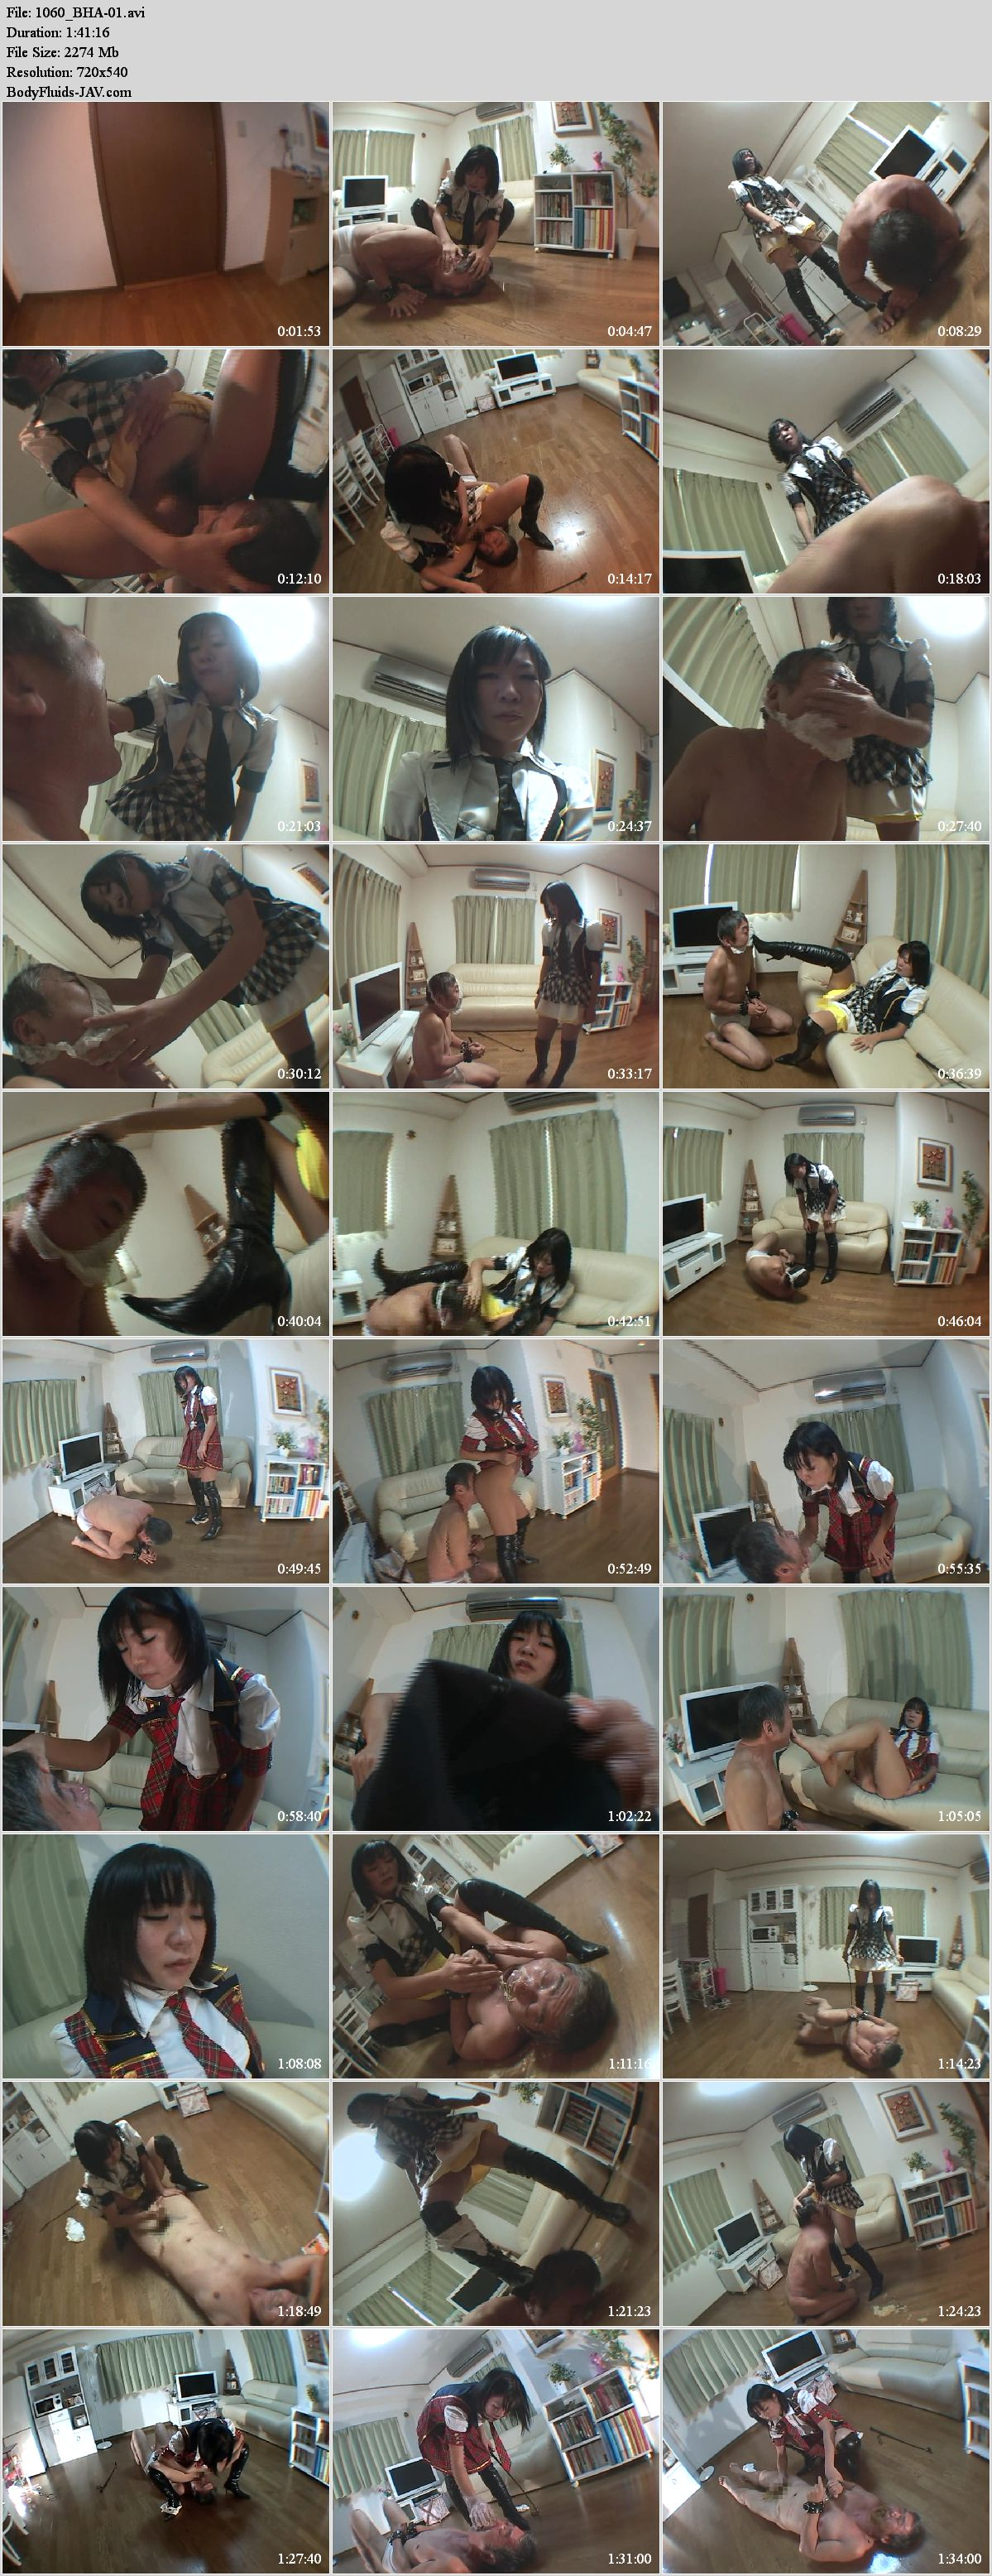 BHA-01 Mistress in boots shitting on face slave.